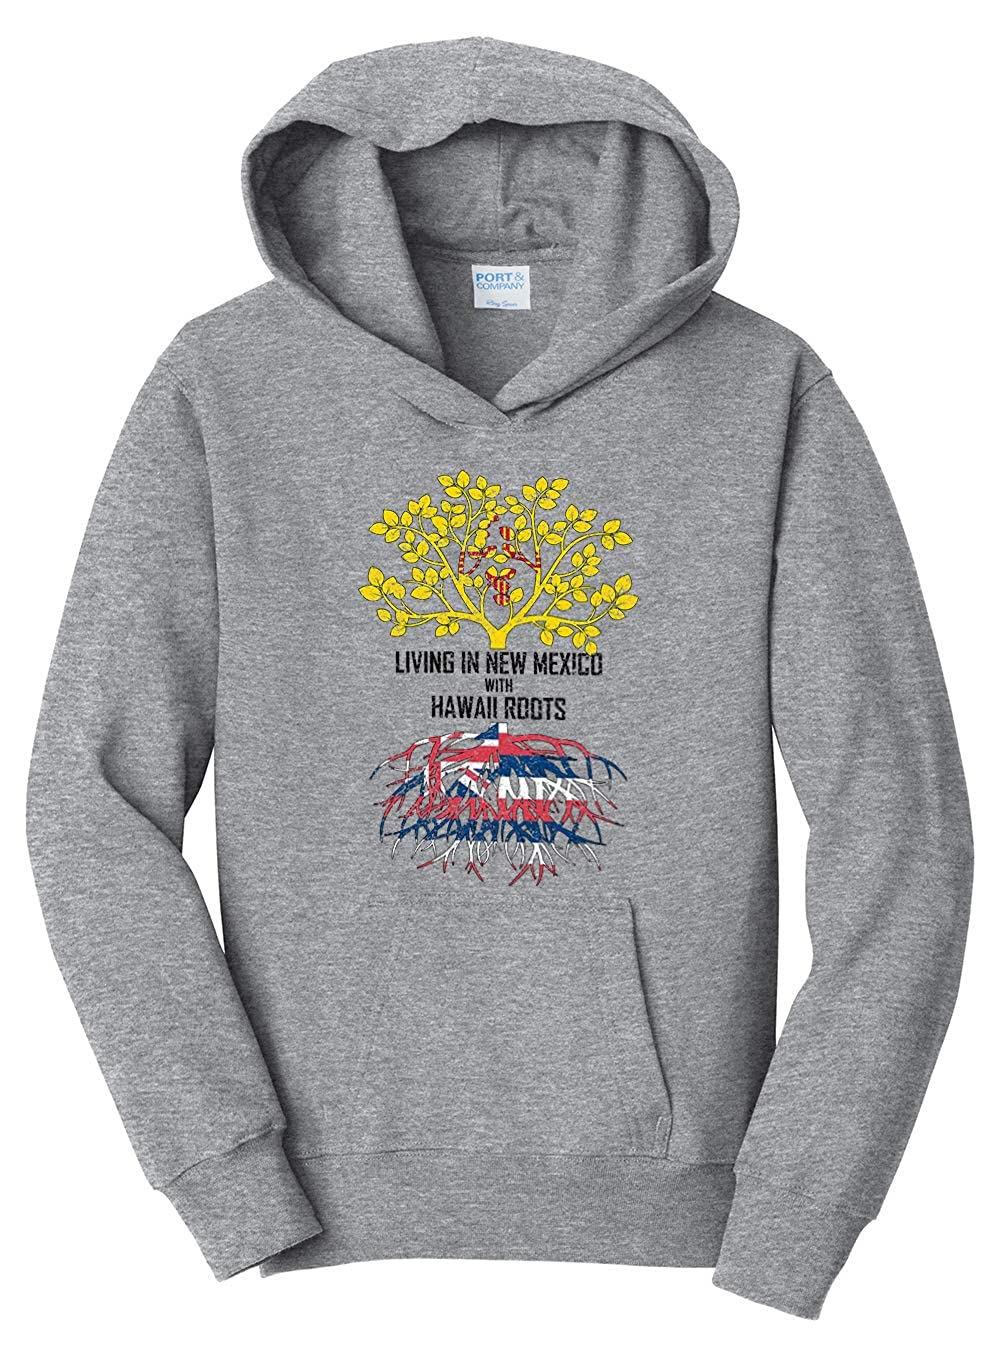 Tenacitee Girls Living in New Mexico with Hawaii Roots Hooded Sweatshirt